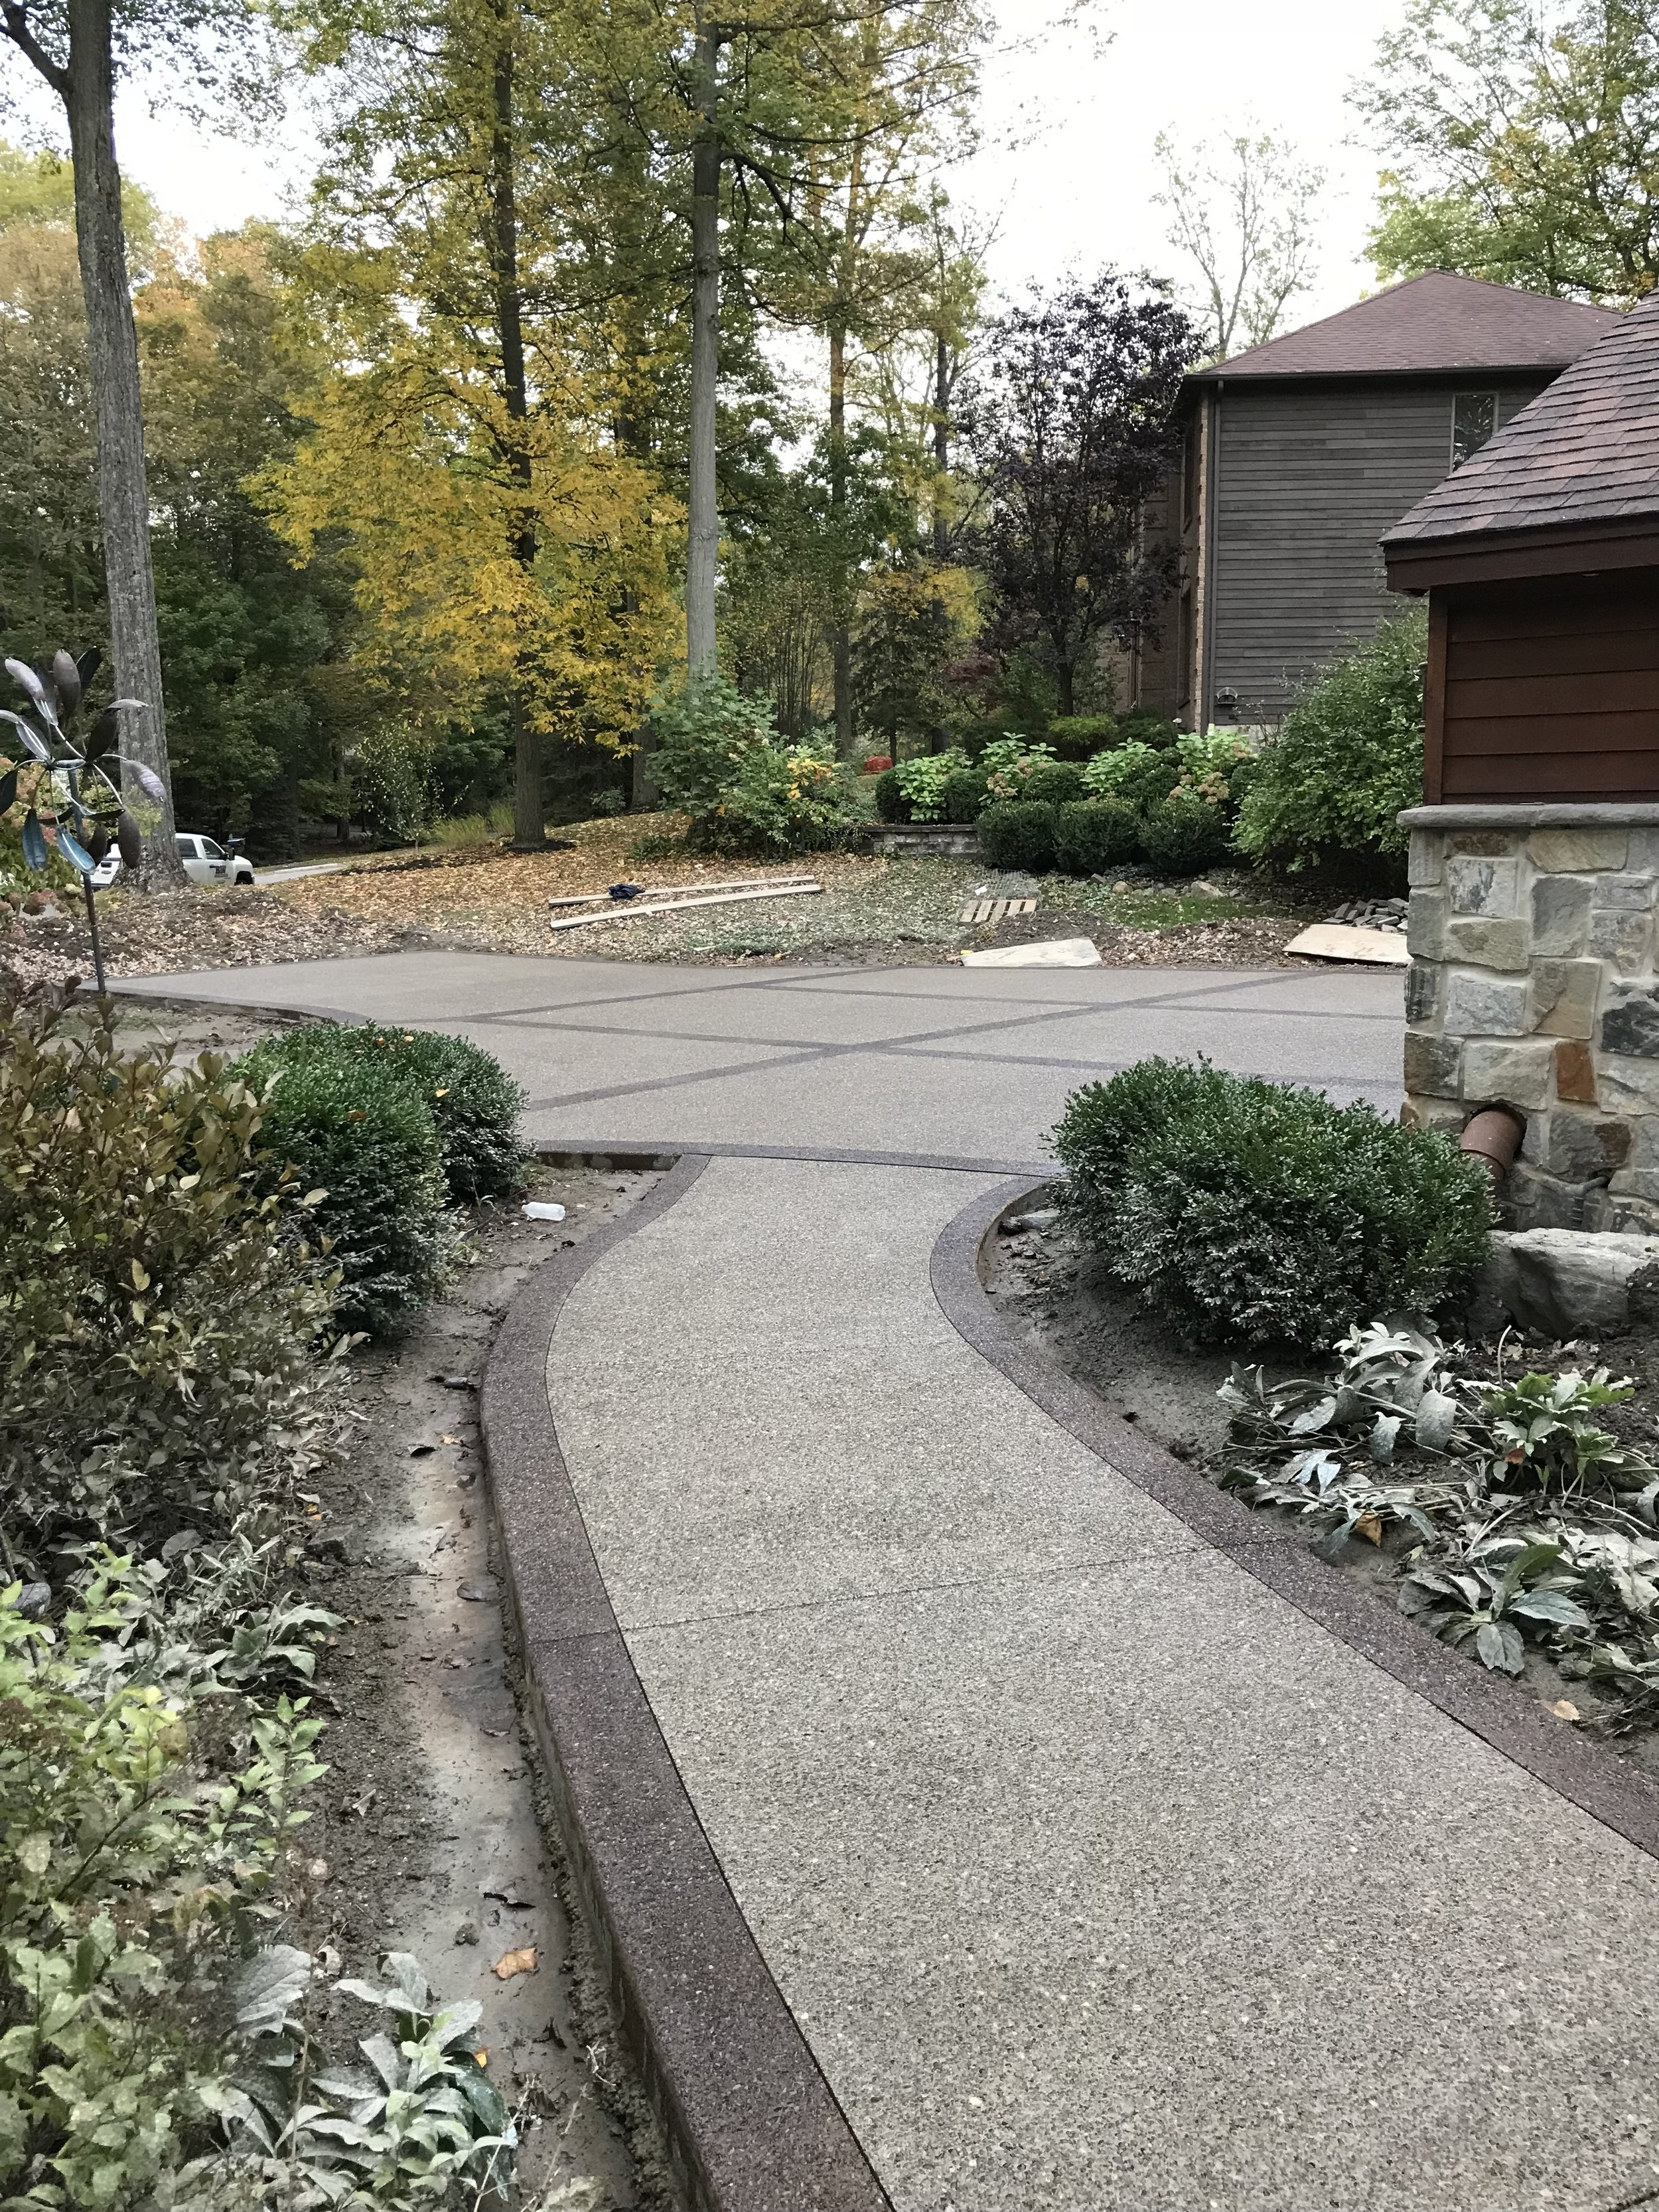 Walkways  Protect your investment. Power washing and resealing your decorative concrete investment, brings your concrete back to the beauty it was when it was first installed.